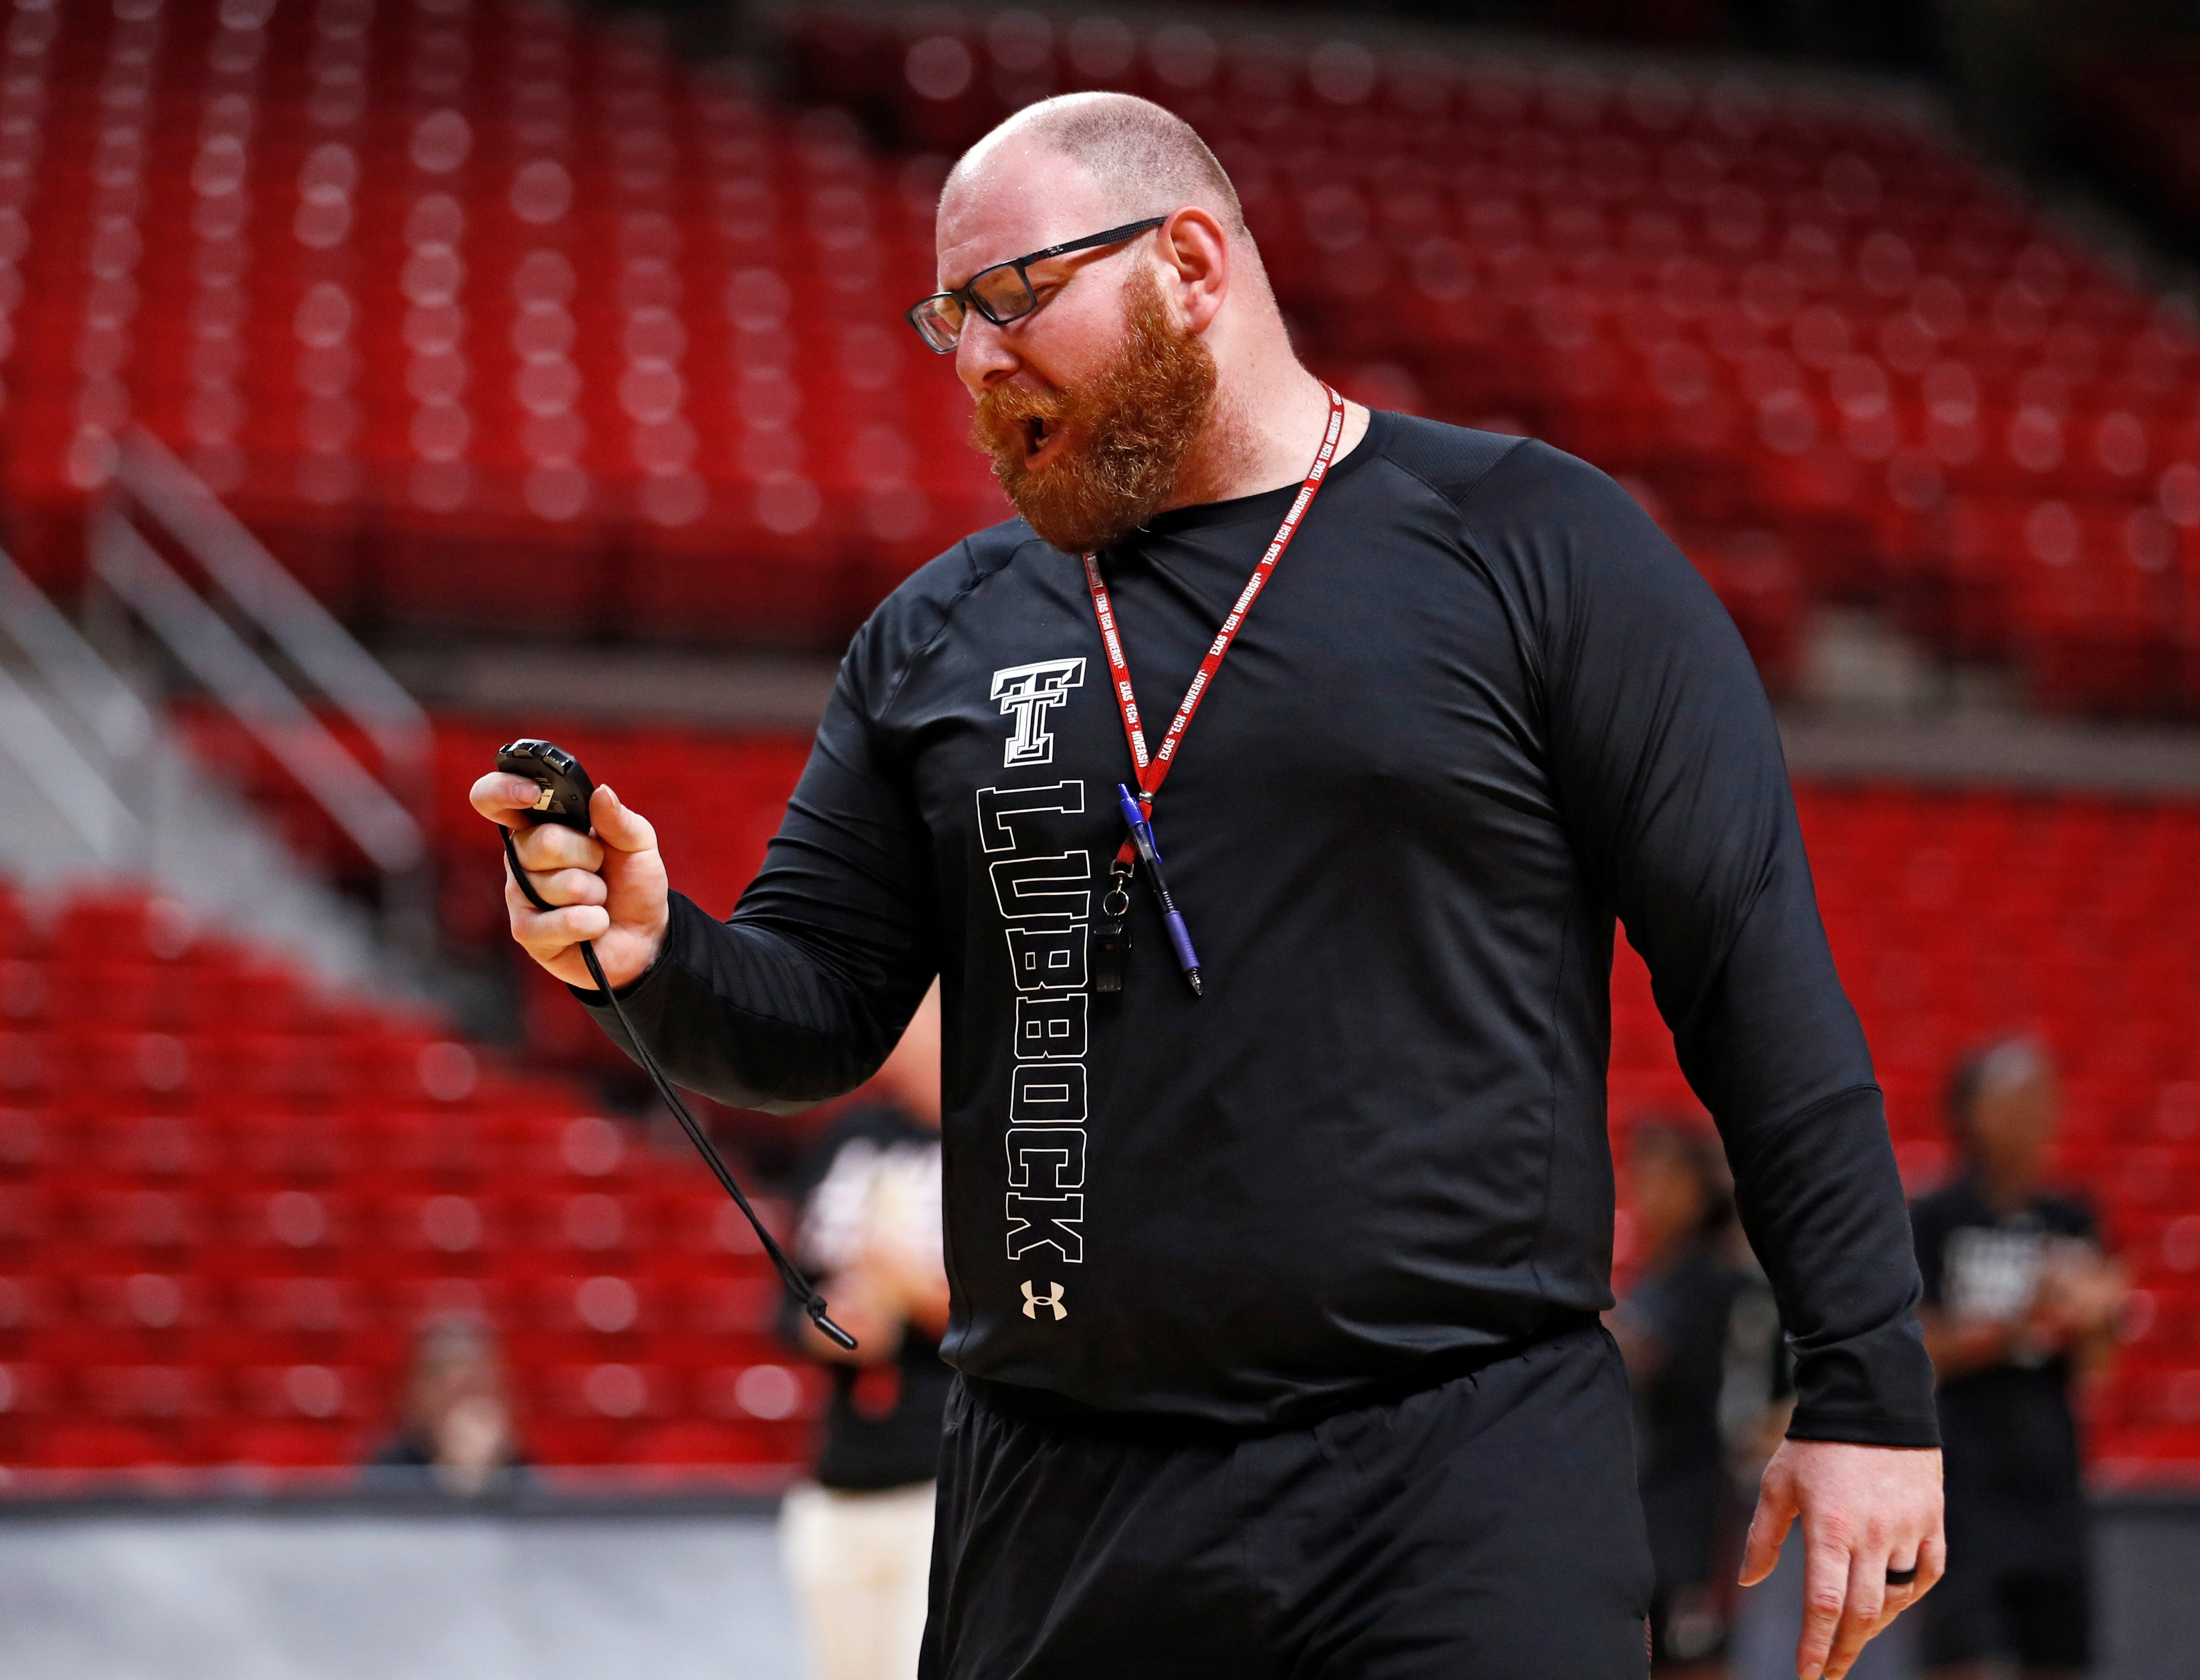 Ralph Petrella was the Texas Tech women's basketball strength and conditioning coach before resigning in March.